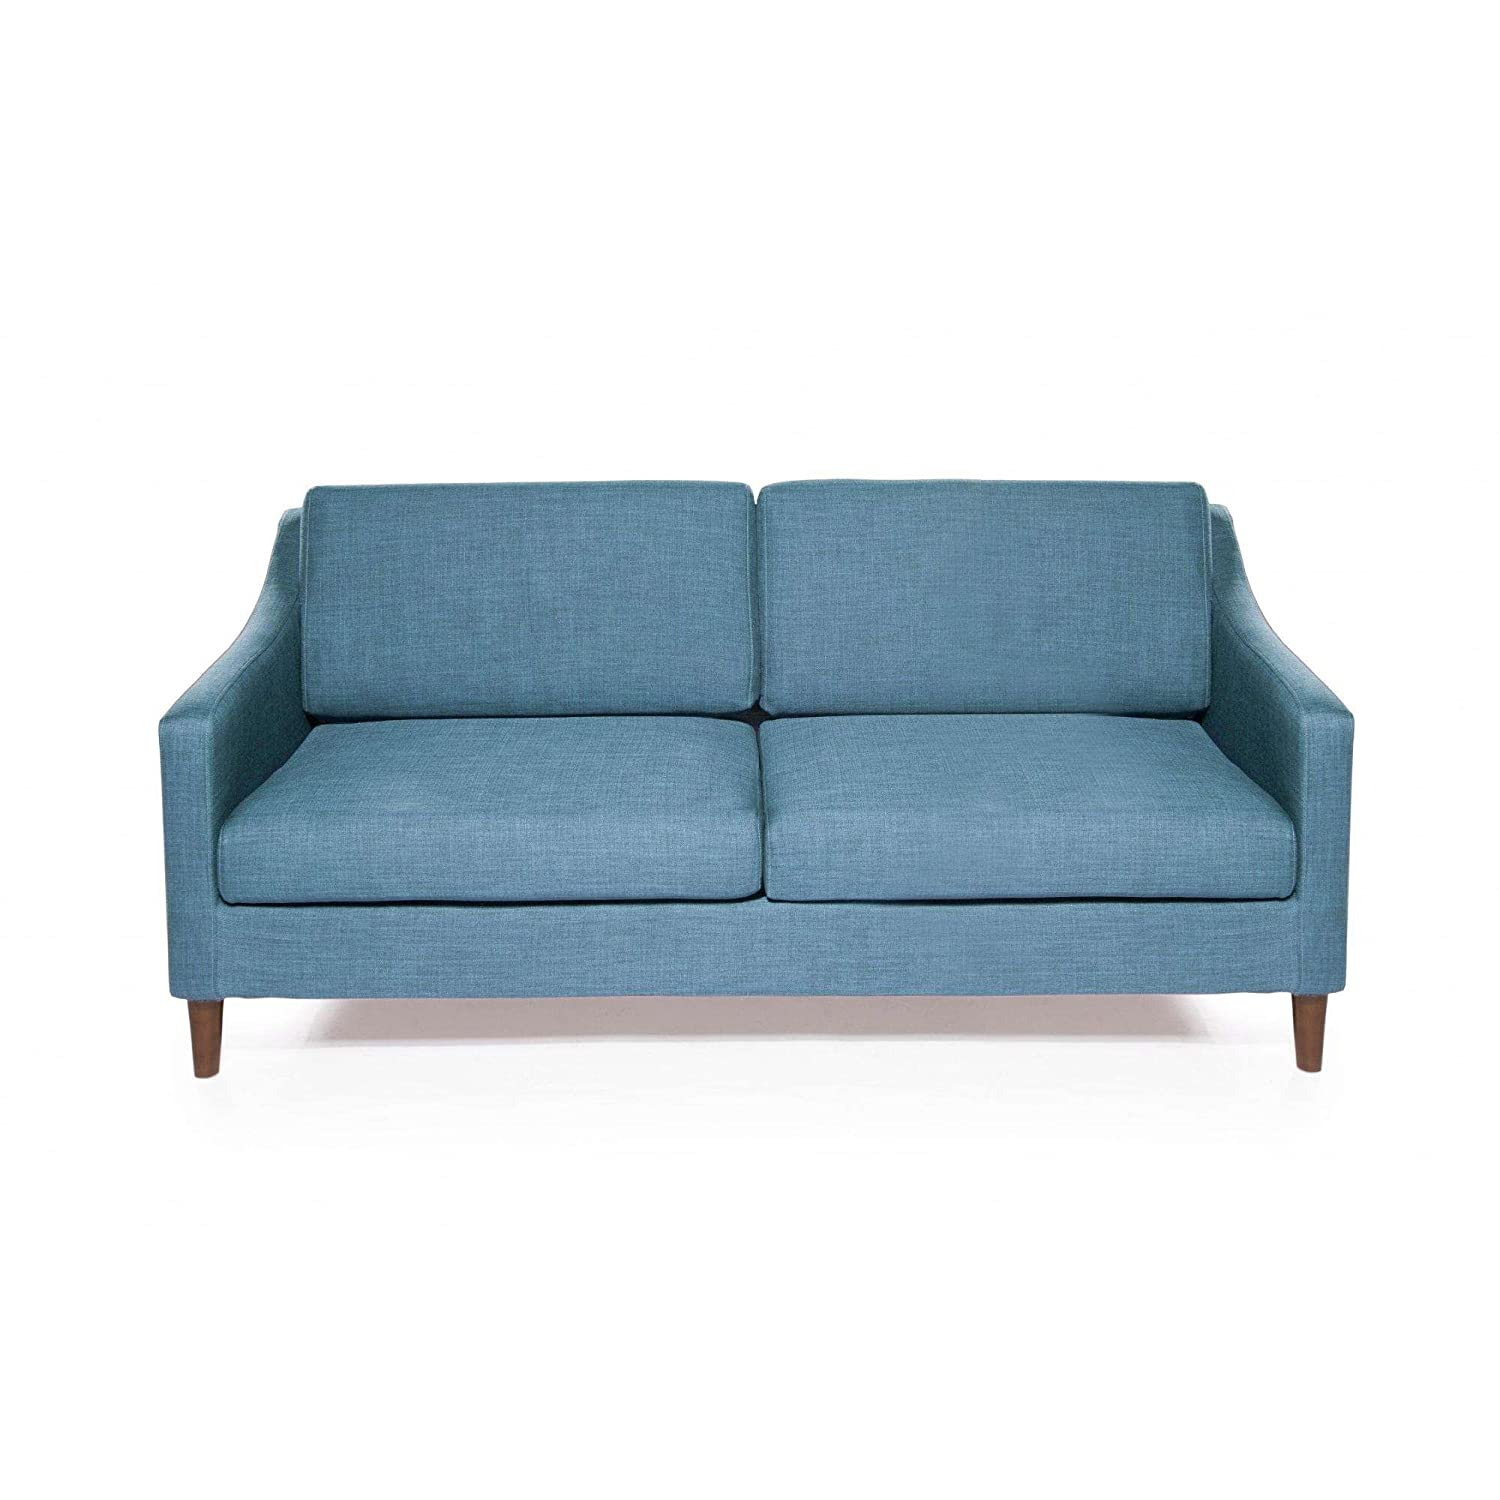 Sofa in blue stone finish grade woven fabric upholstery living room finish removable cover solid wood legs loveseat ottoman bundle with our expert